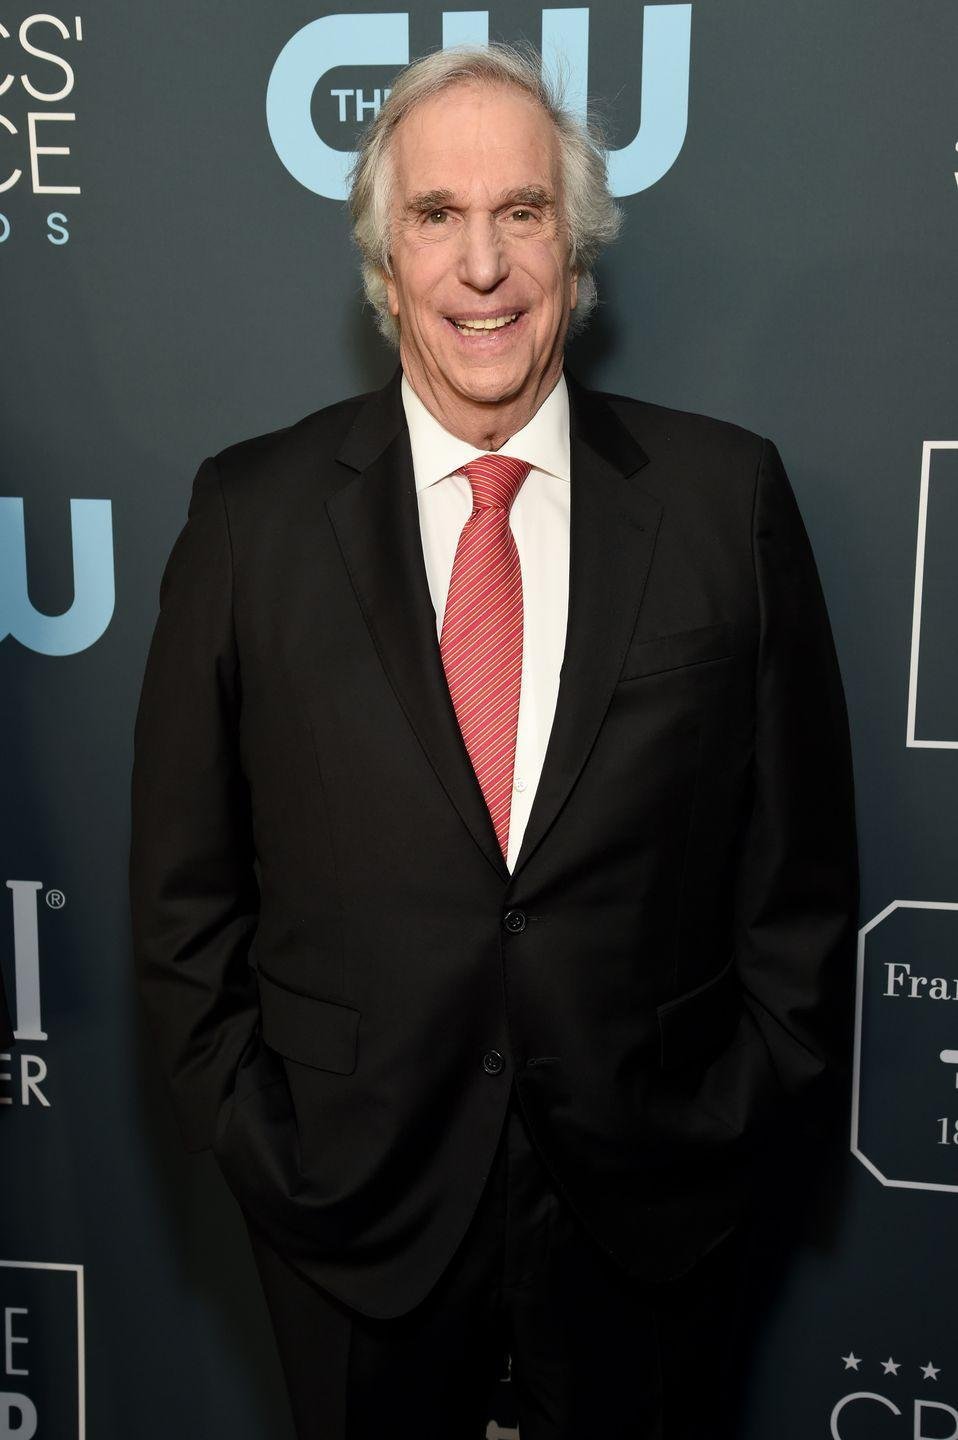 <p>After graduating from Emerson College, Winkler went on to attend the Yale School of Drama, where he received a master's degree in 1970.</p>